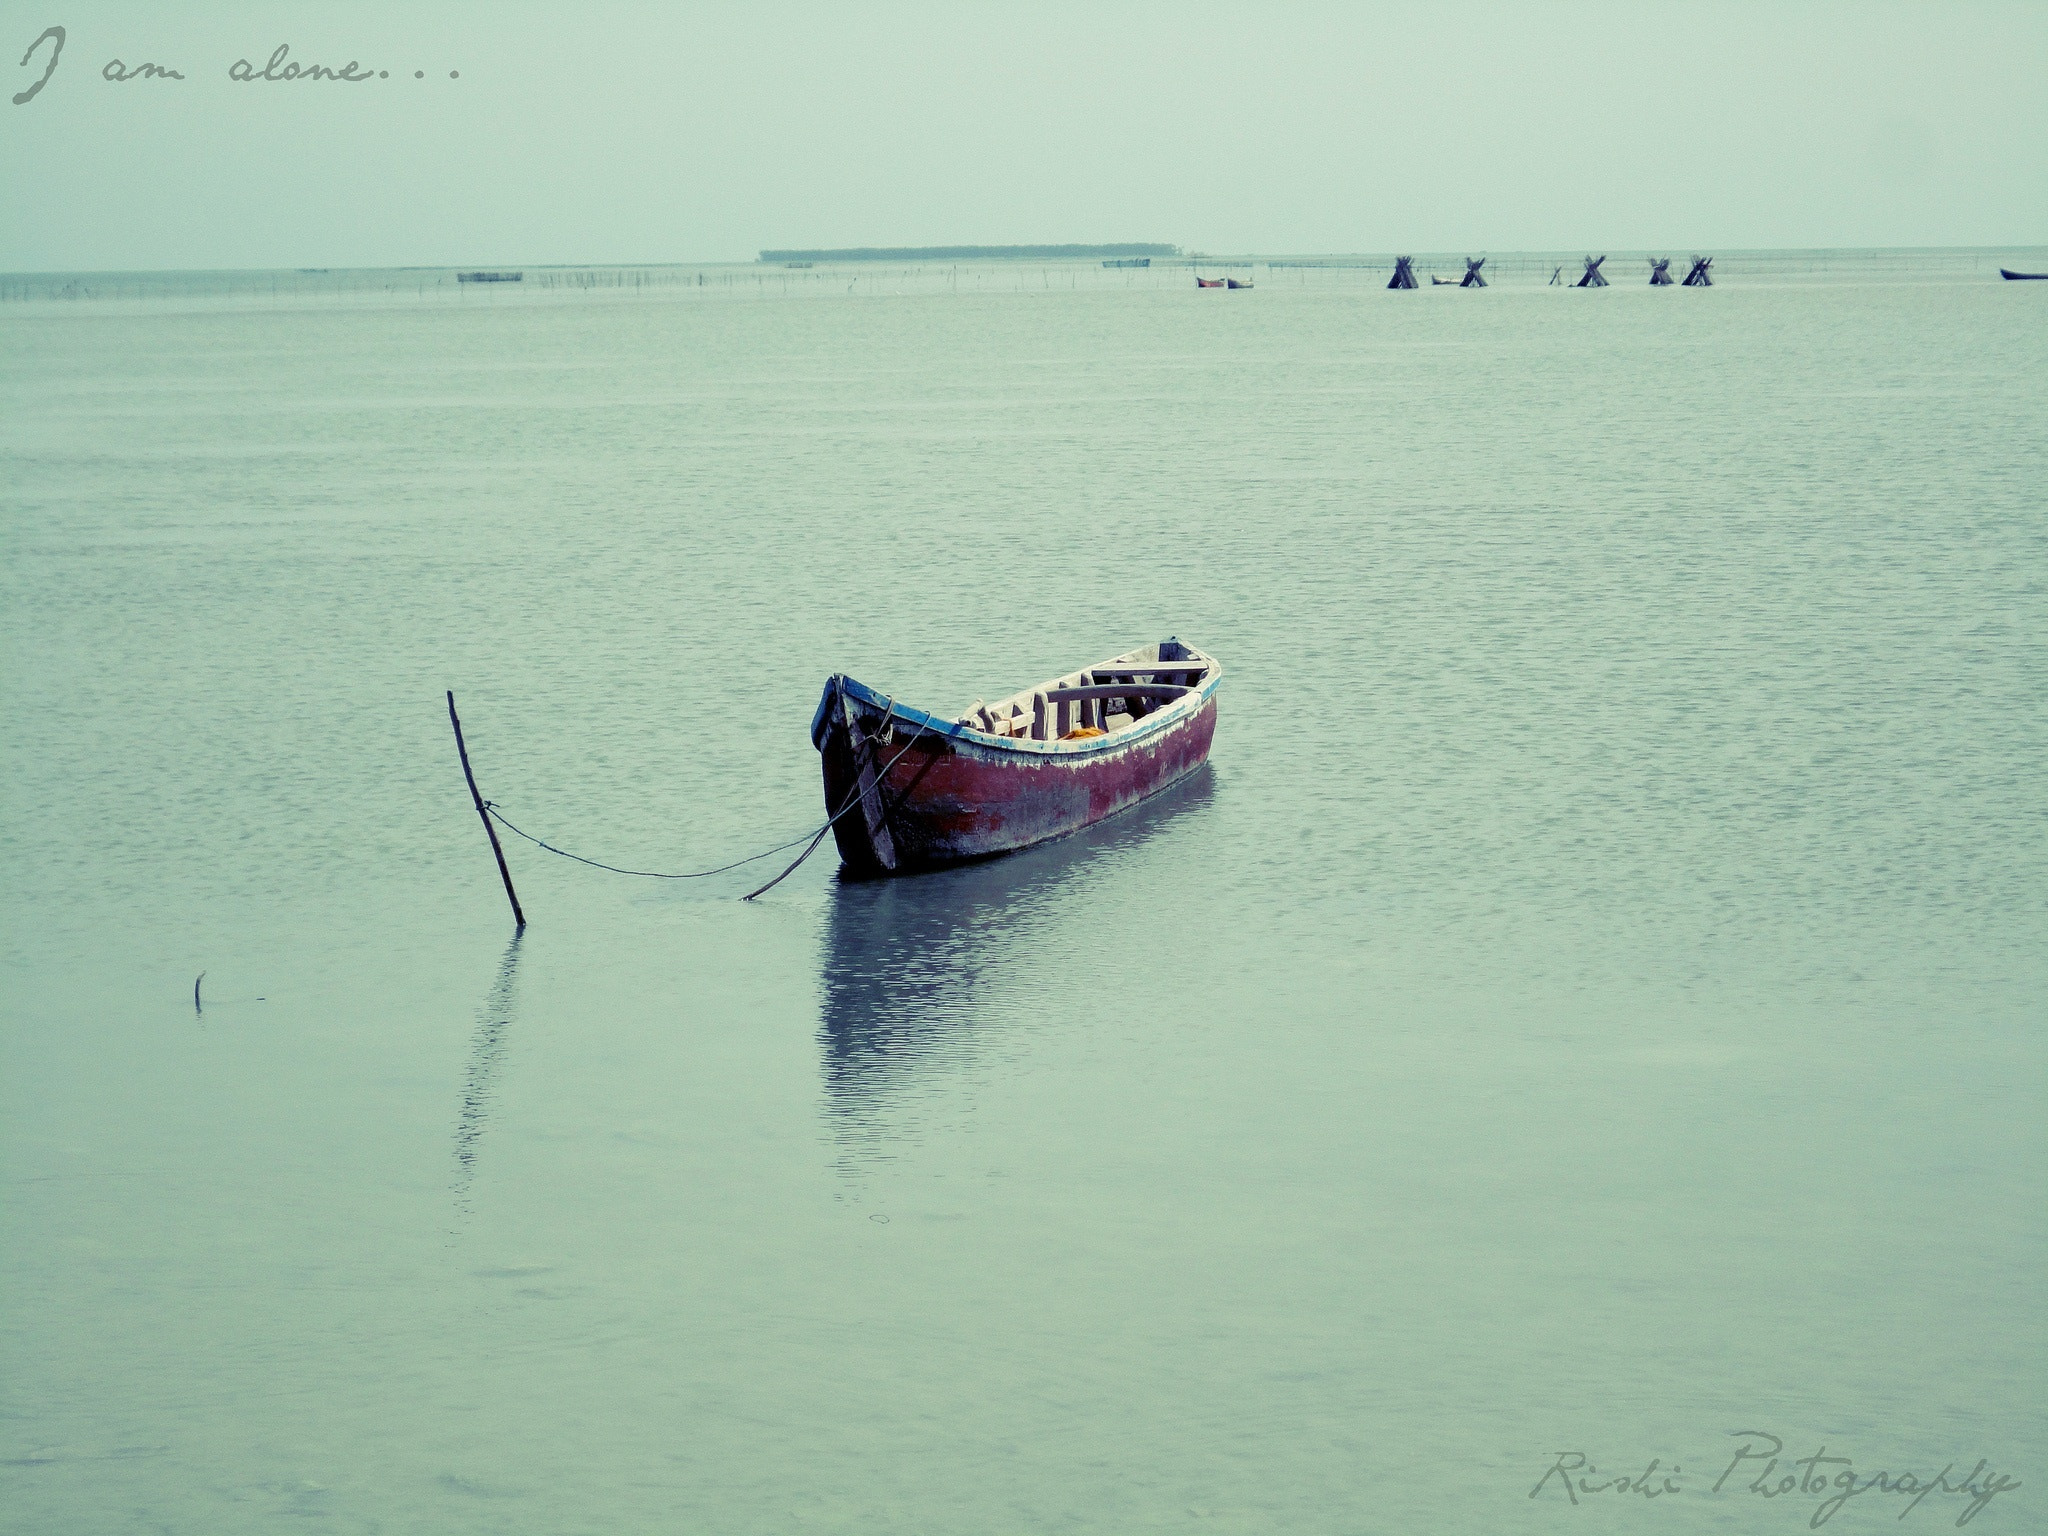 Photograph Alone|| Shallow Sea by Rishikeshan Pangushan on 500px